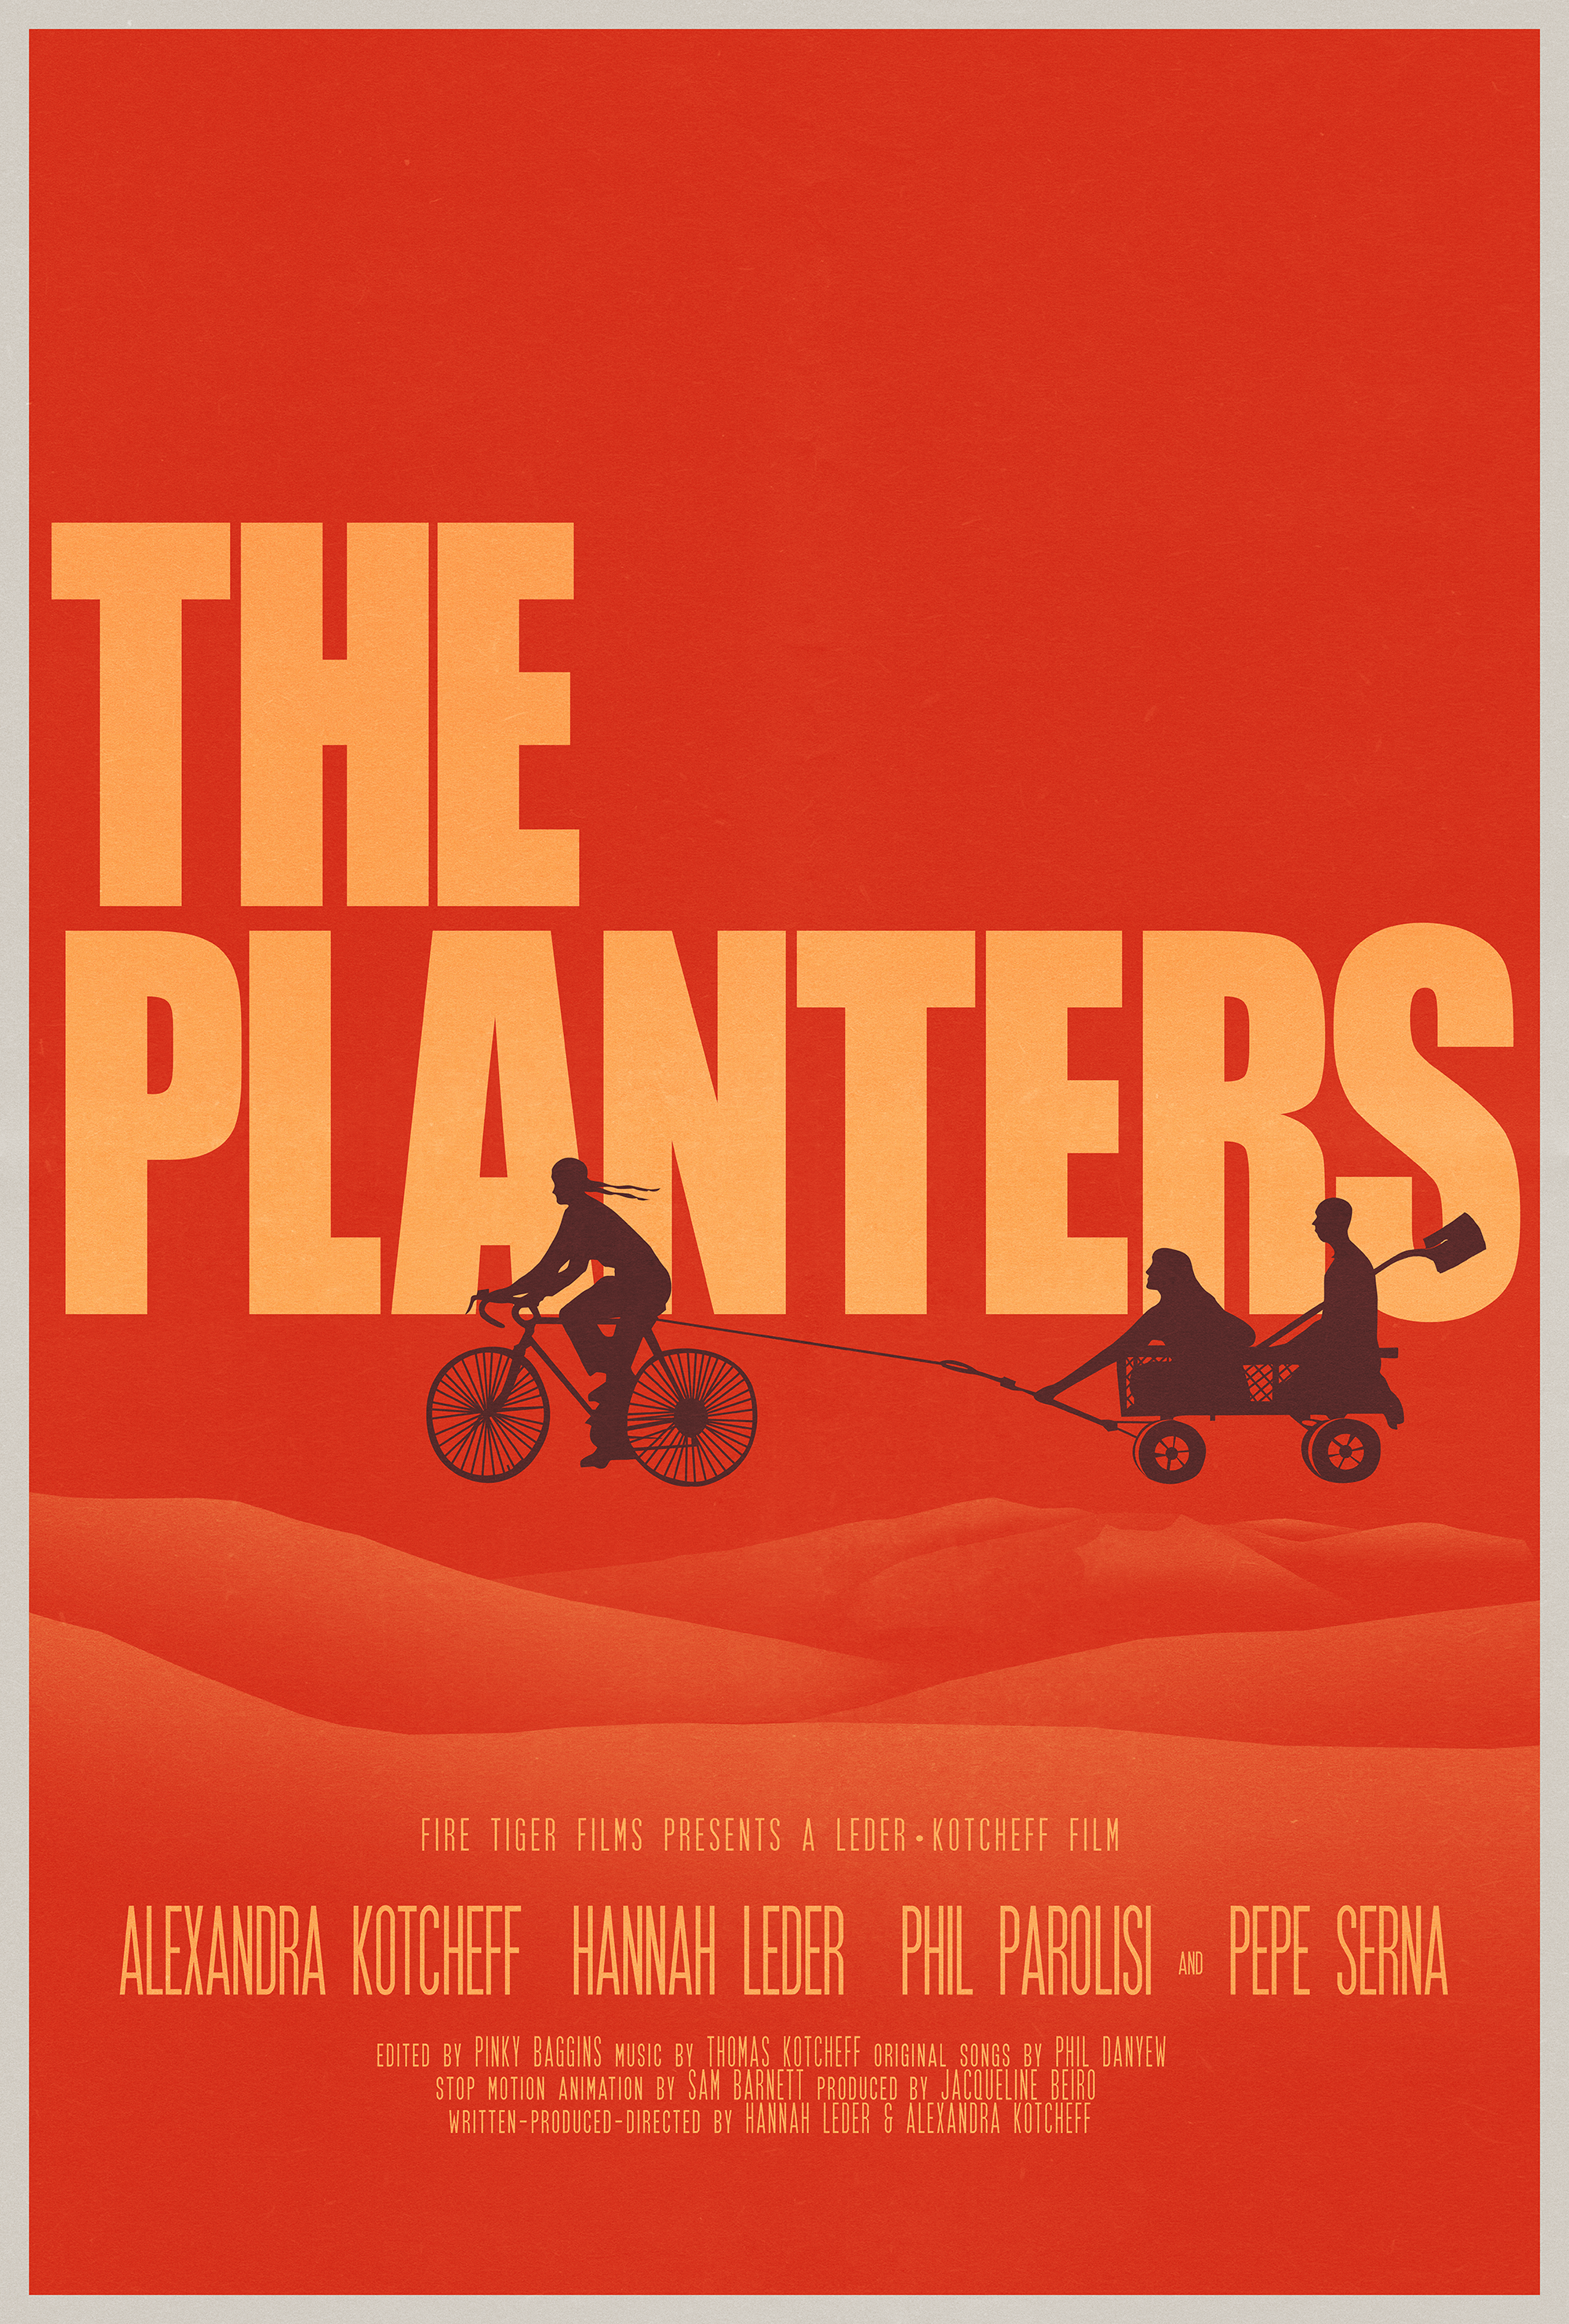 The Planters Posterbground.png